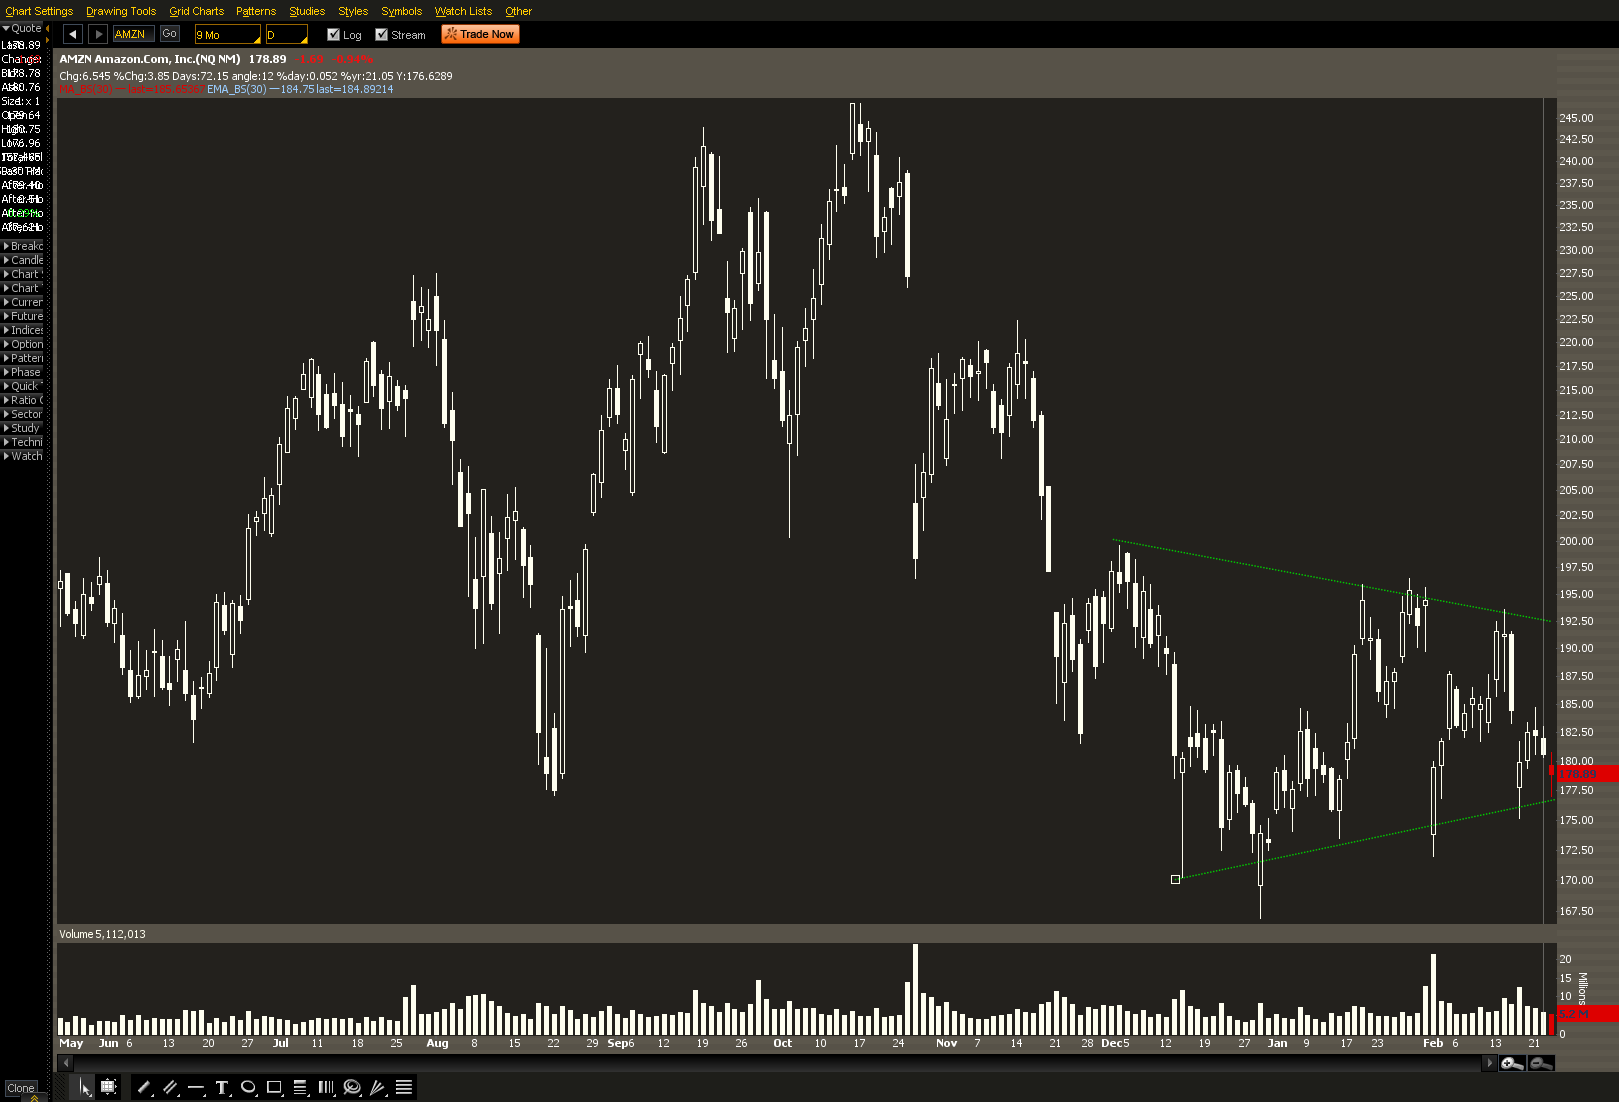 AMZN Trading at Support